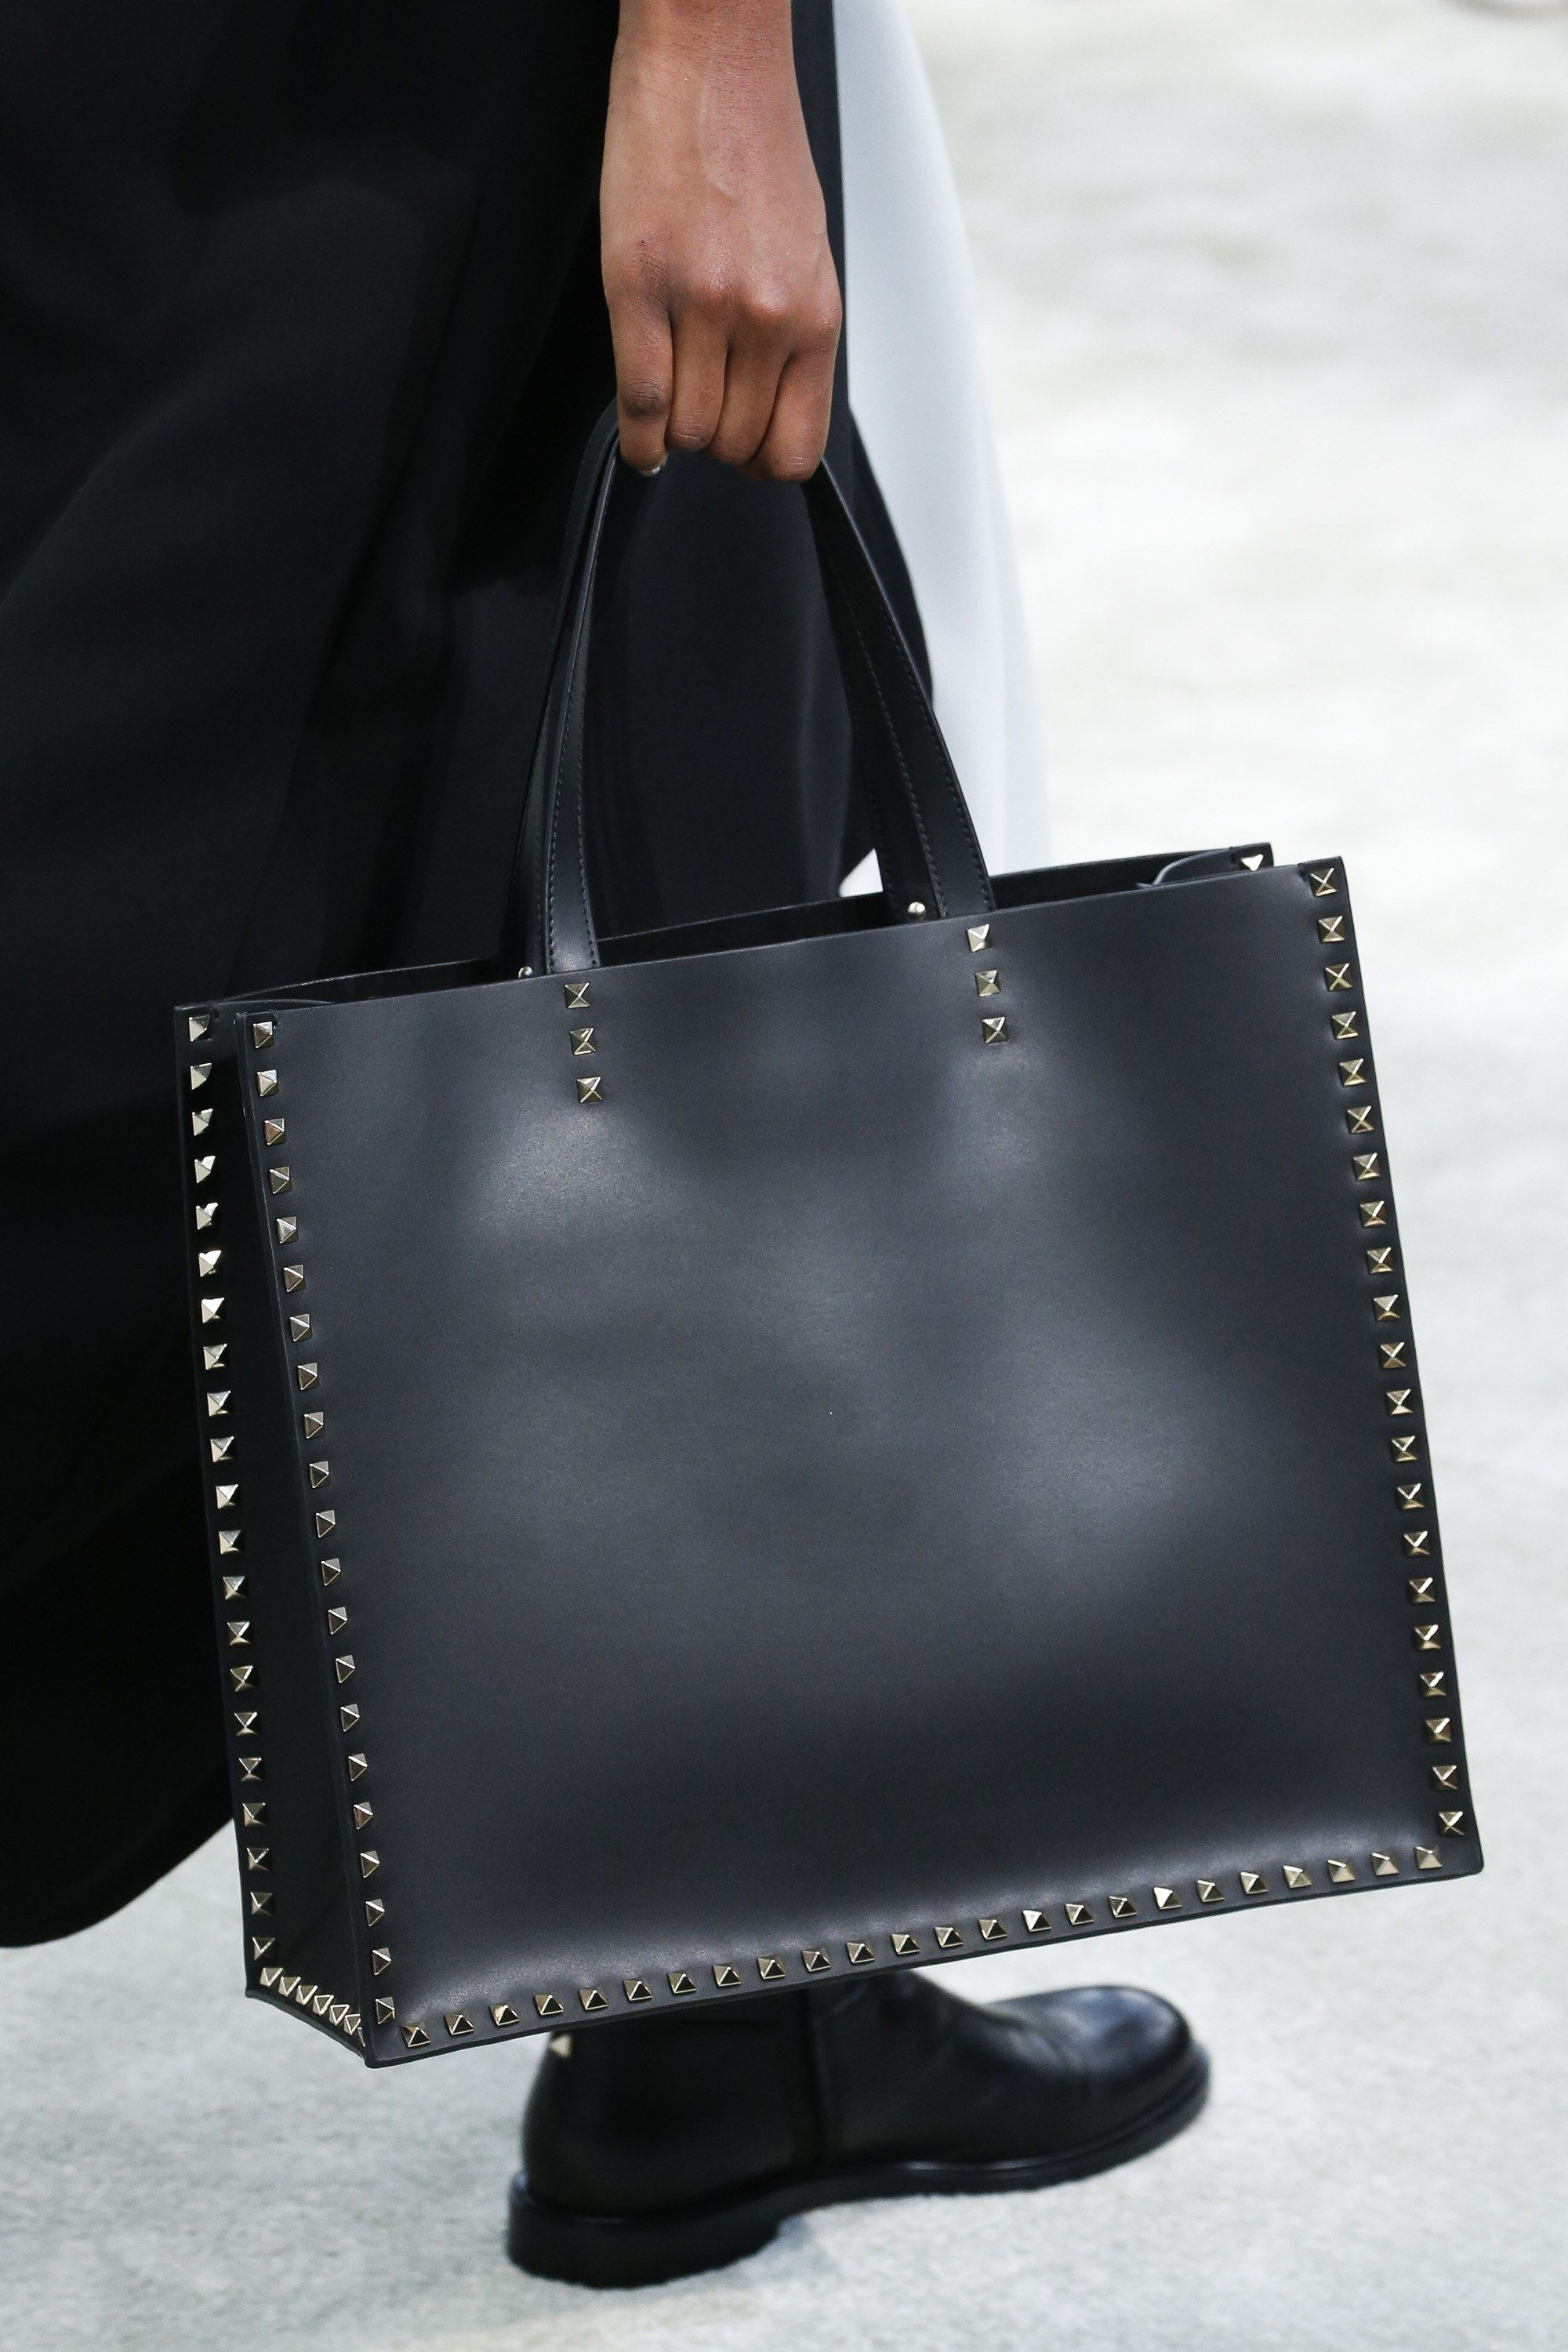 The Complete Valentino Fall 2018 Ready To Wear Fashion Show Now On Vogue Runway Popular Handbags Latest Handbags Valentino Bags